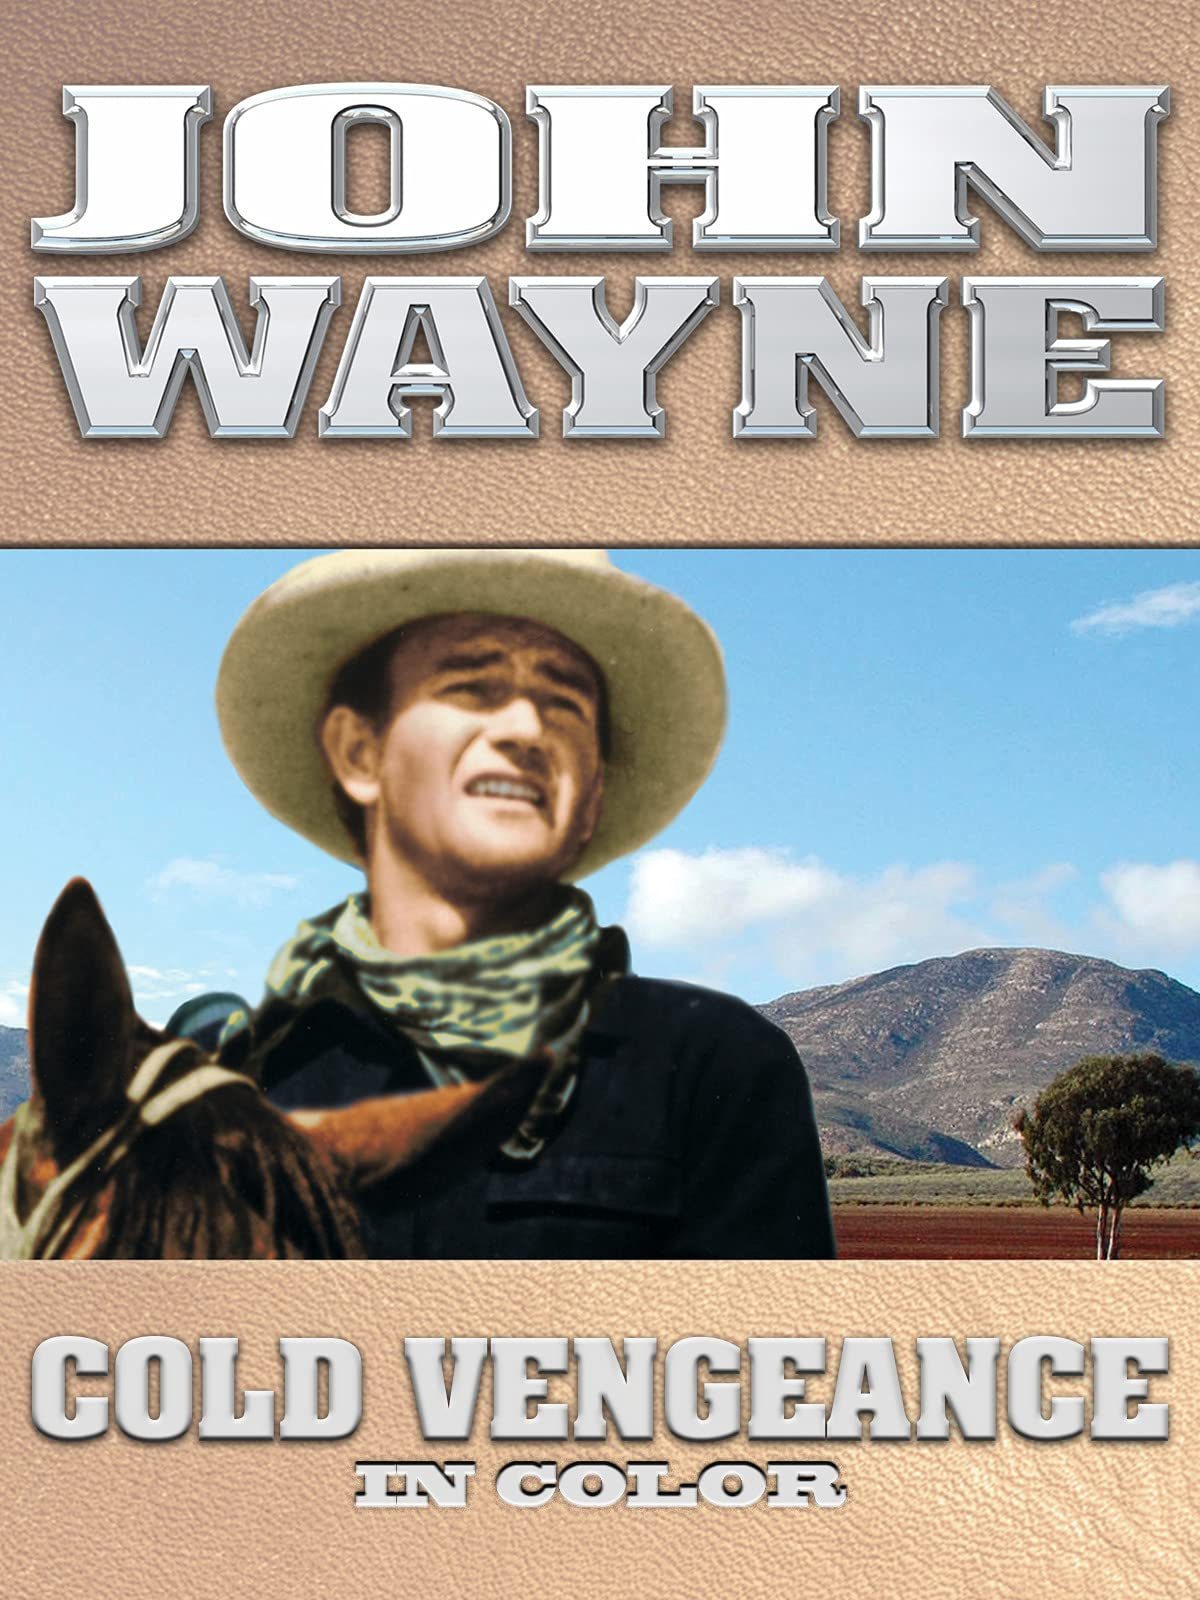 John Wayne: Cold Vengeance (In Color) on Amazon Prime Video UK